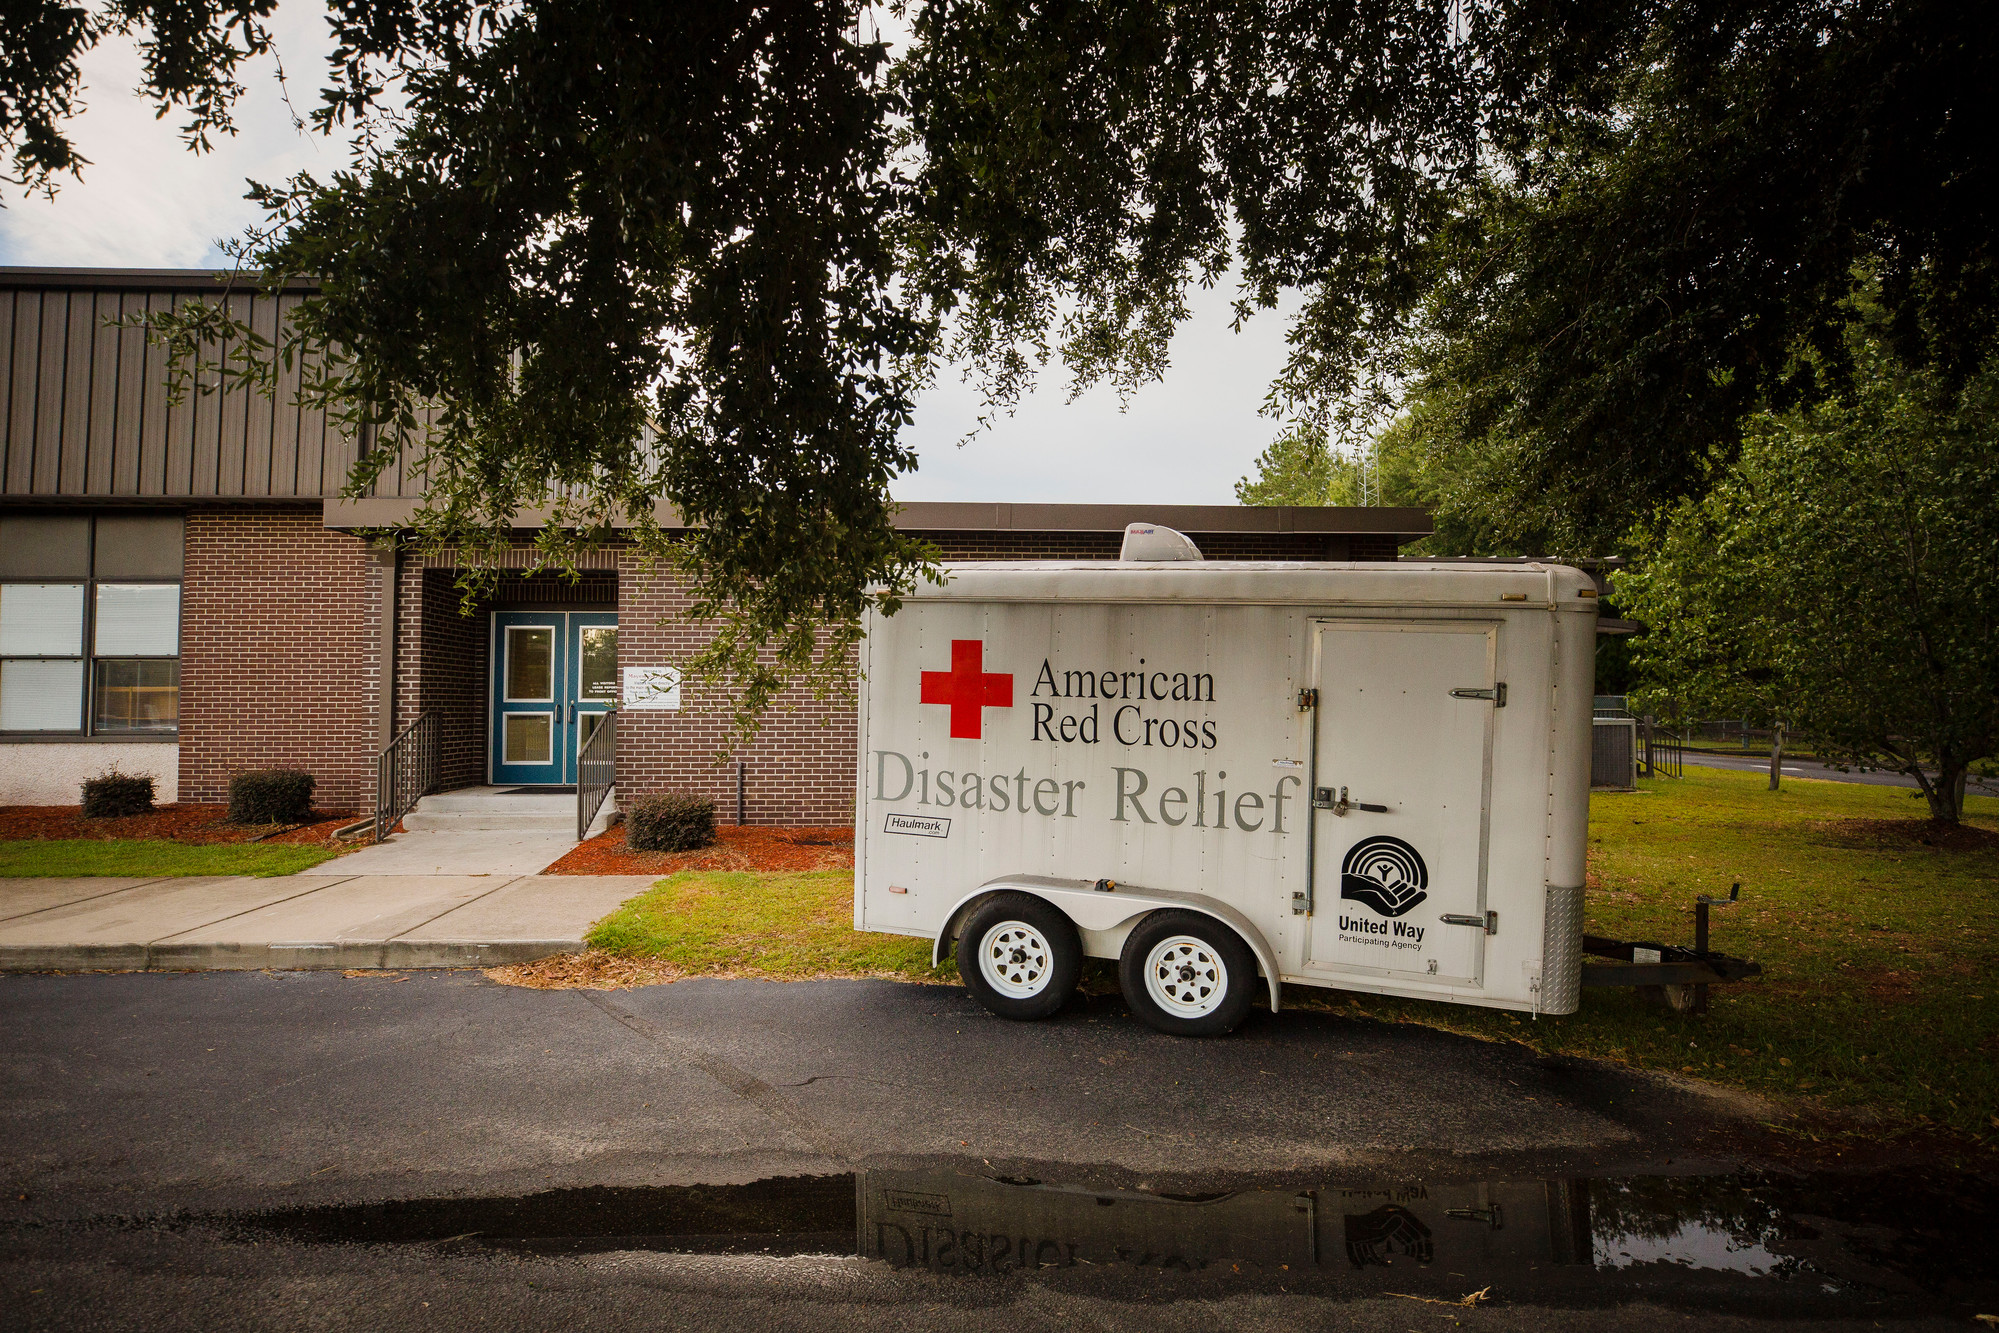 An American Red Cross Disater Relief trailer sits outside Mayewood Middle School on Wednesday afternoon.